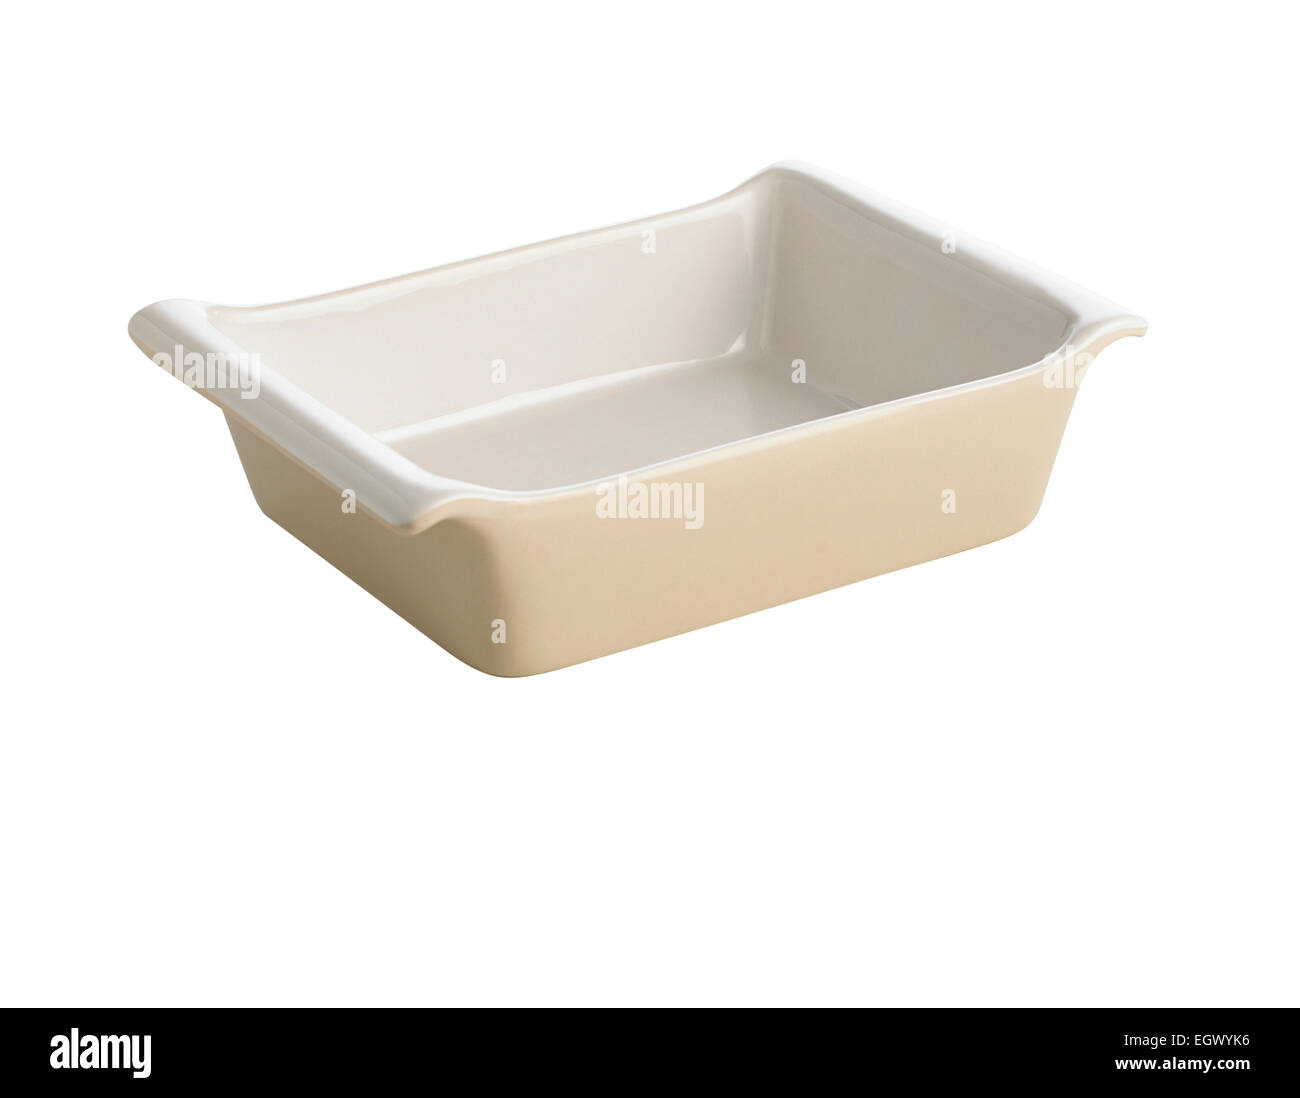 Oven Dish - Stock Image